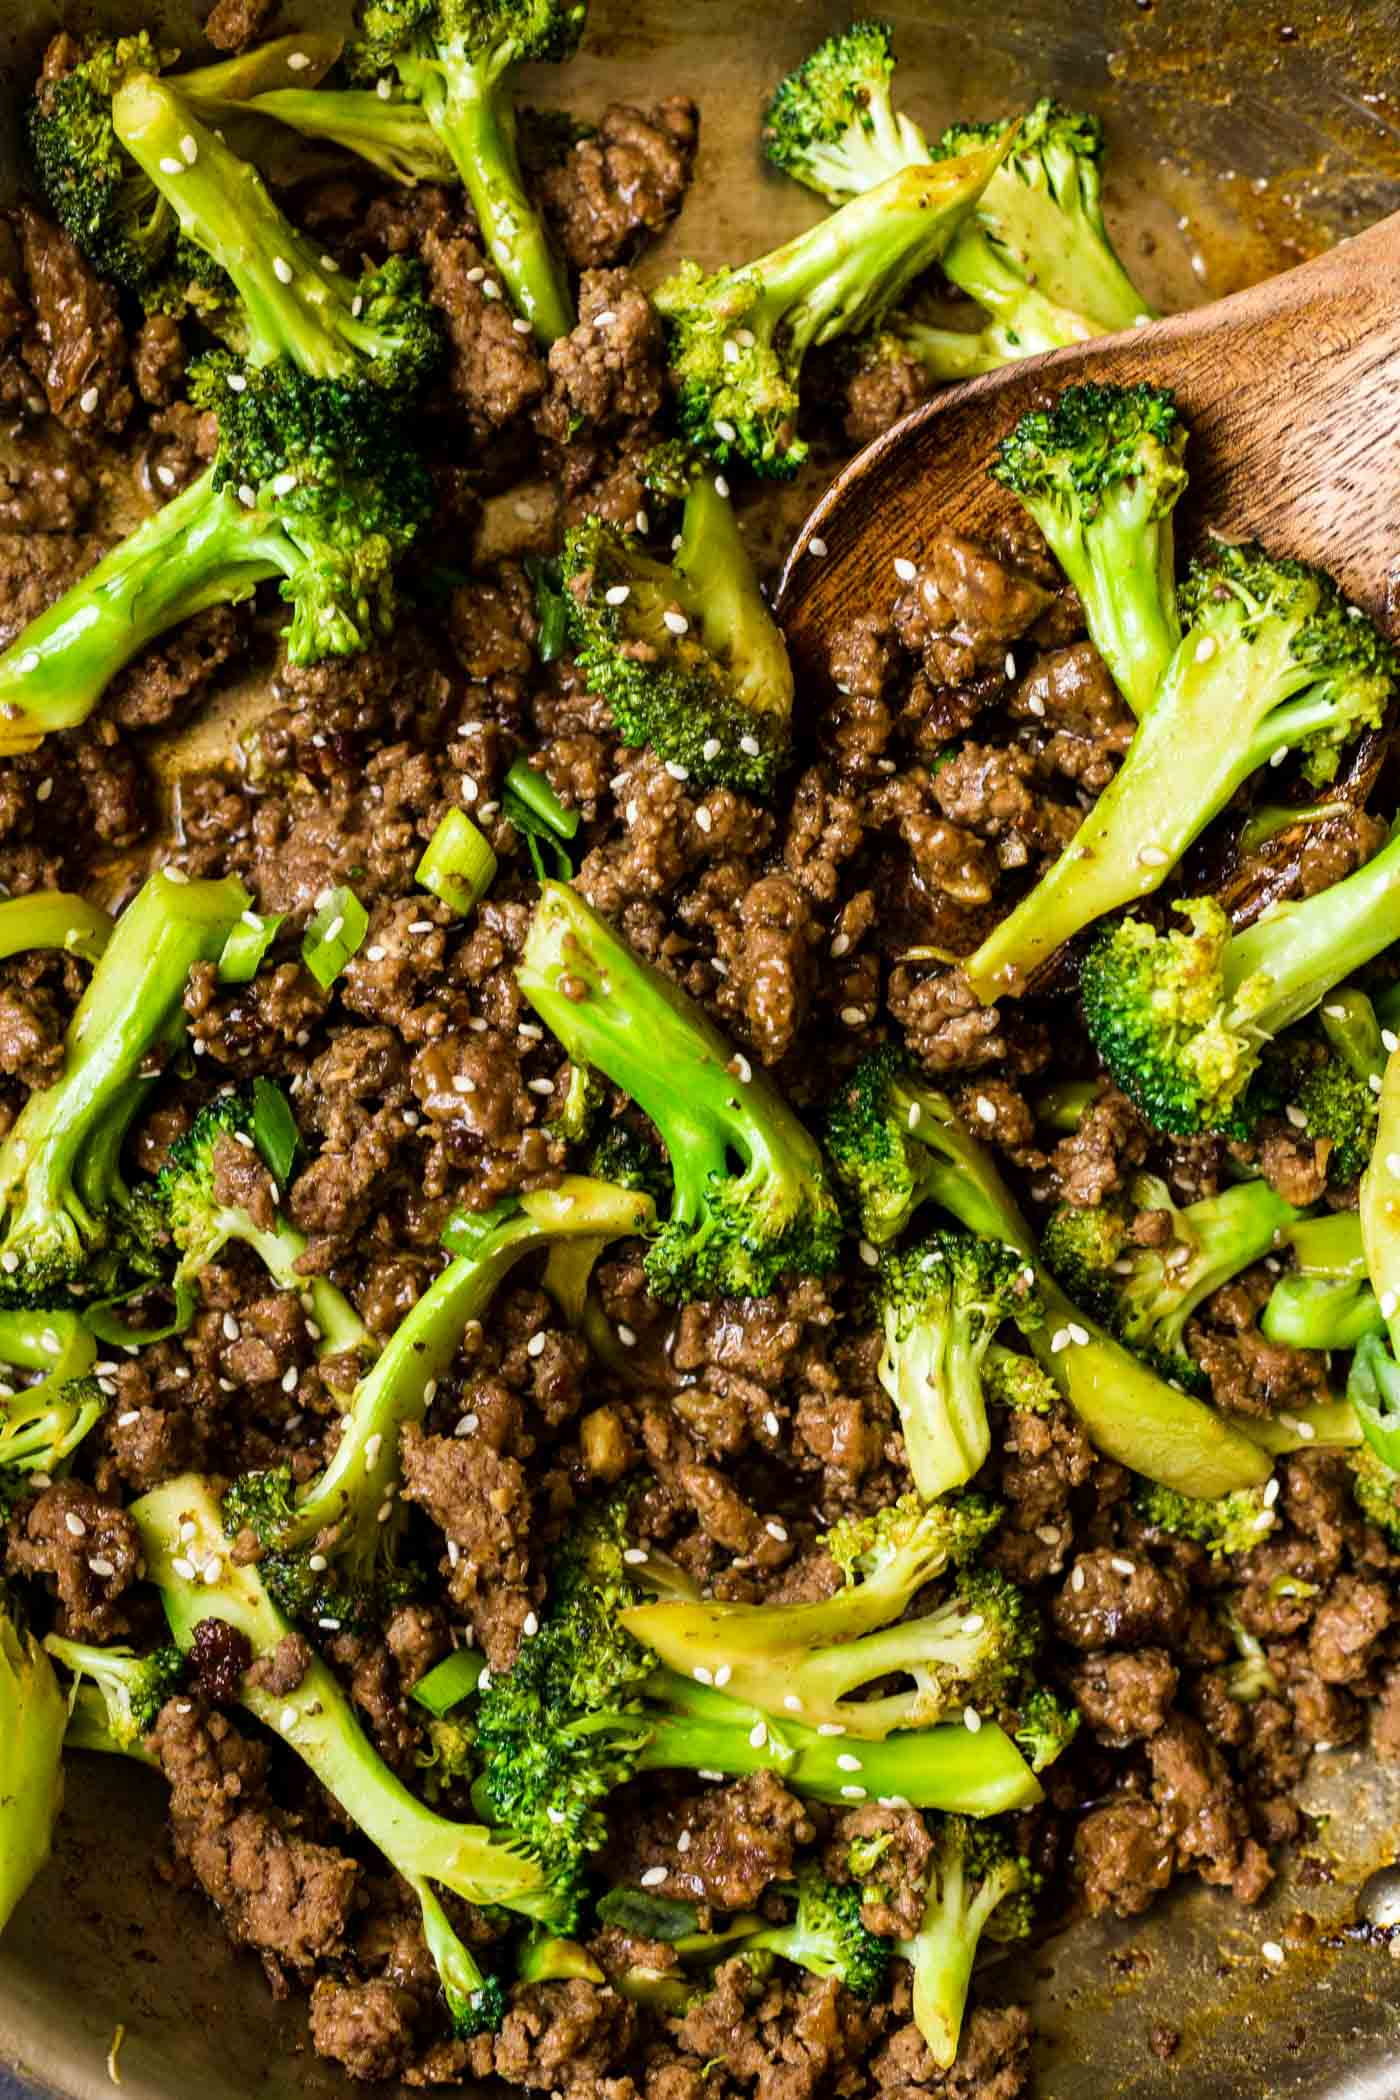 Ground beef broccoli in skillet